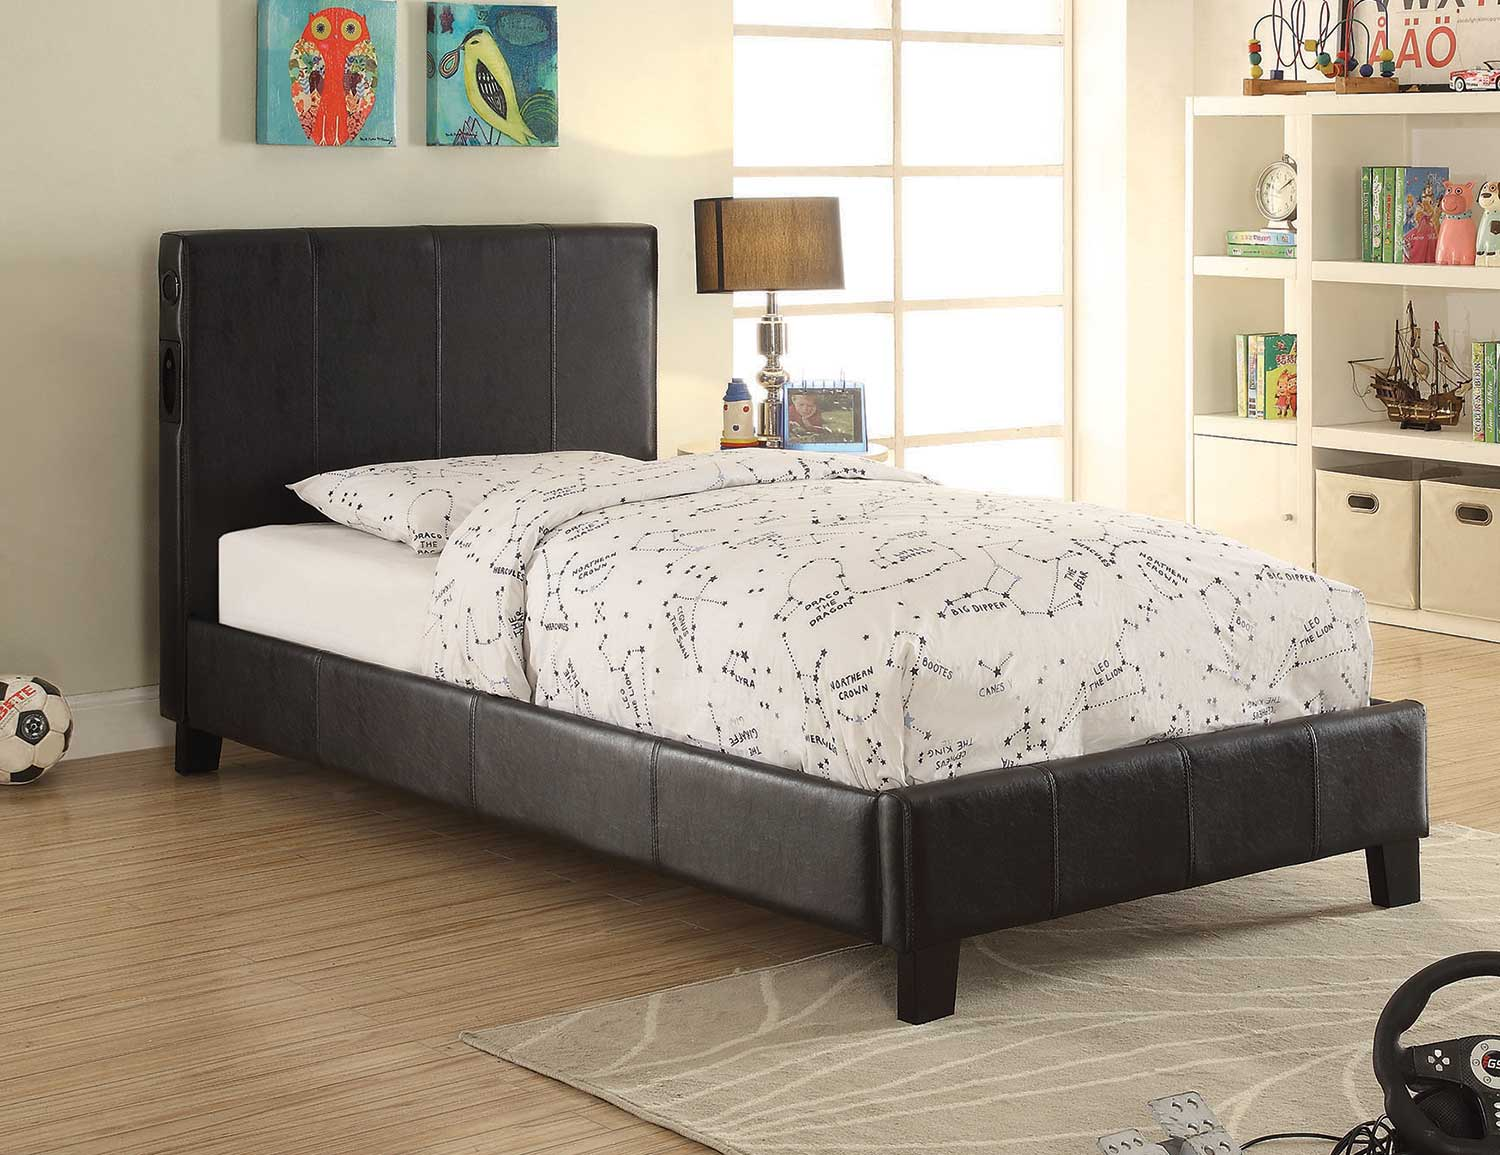 Superb Coaster Alejandro Low Profile Platform Upholstered Bed With Speakers    Black Leatherette